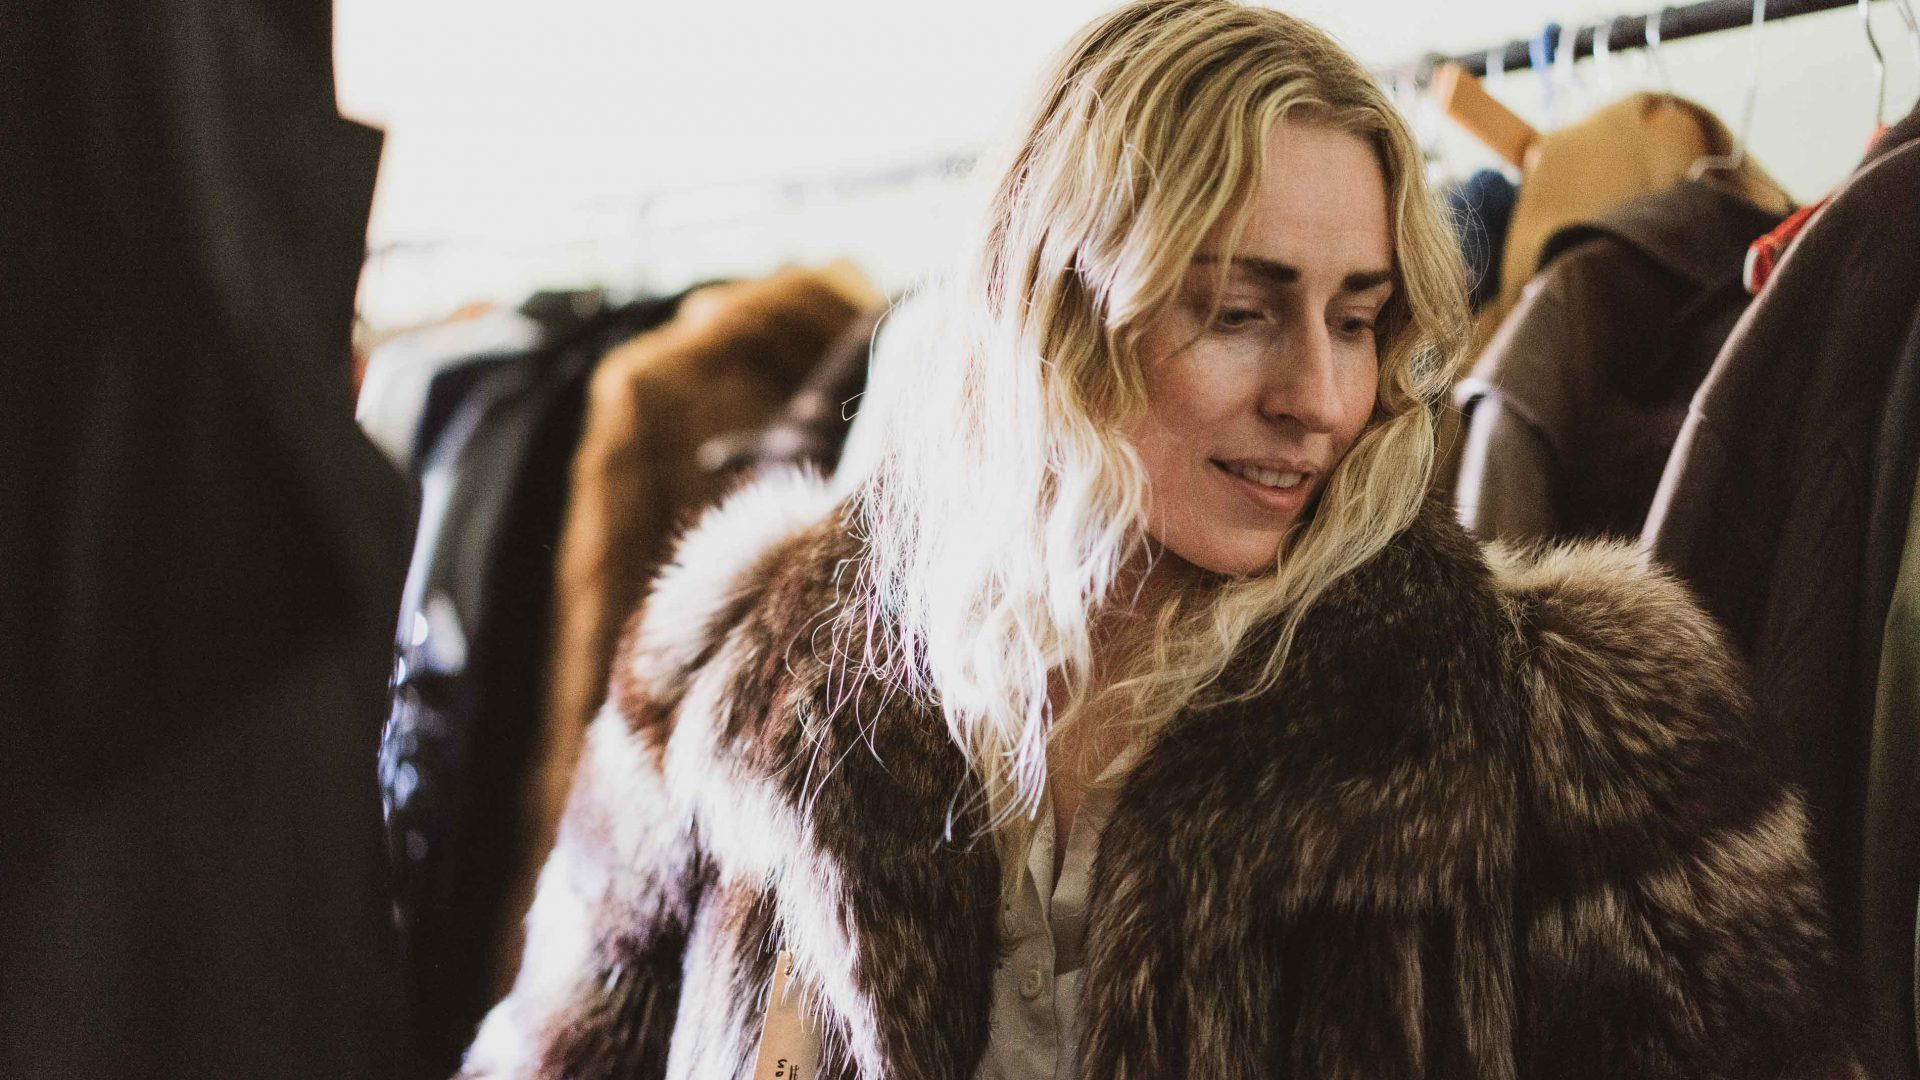 Chef Christie Peters tries on a fur coat in Saskatoon, Canada.